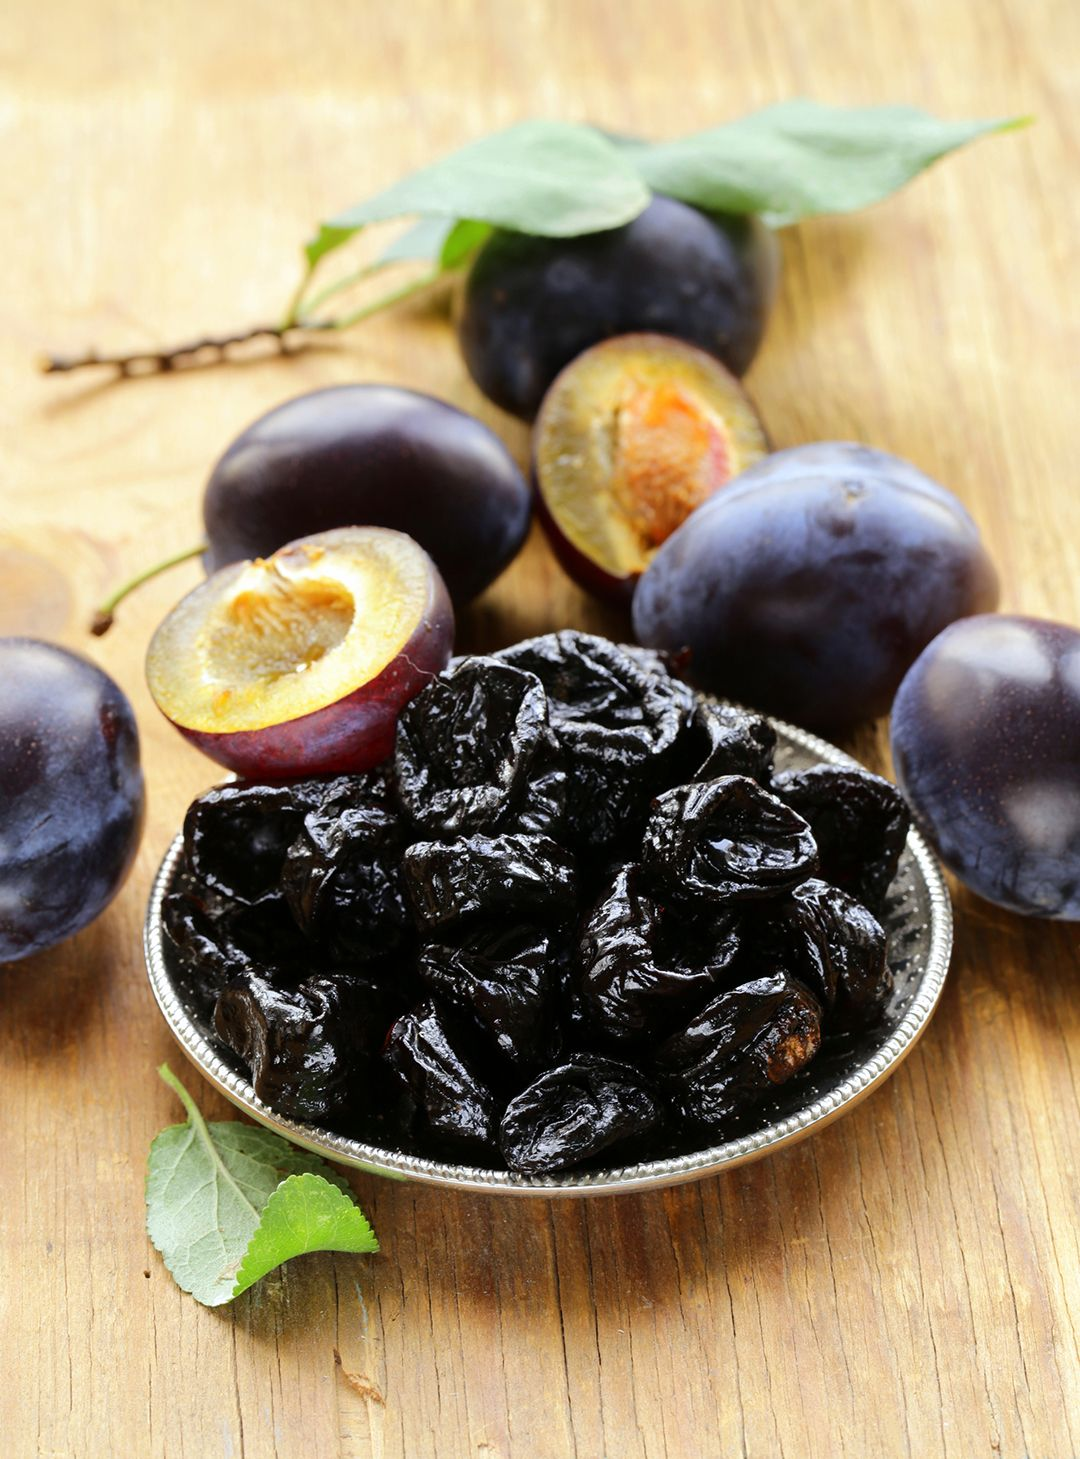 Healthy living tip prunes are a great source of dietary